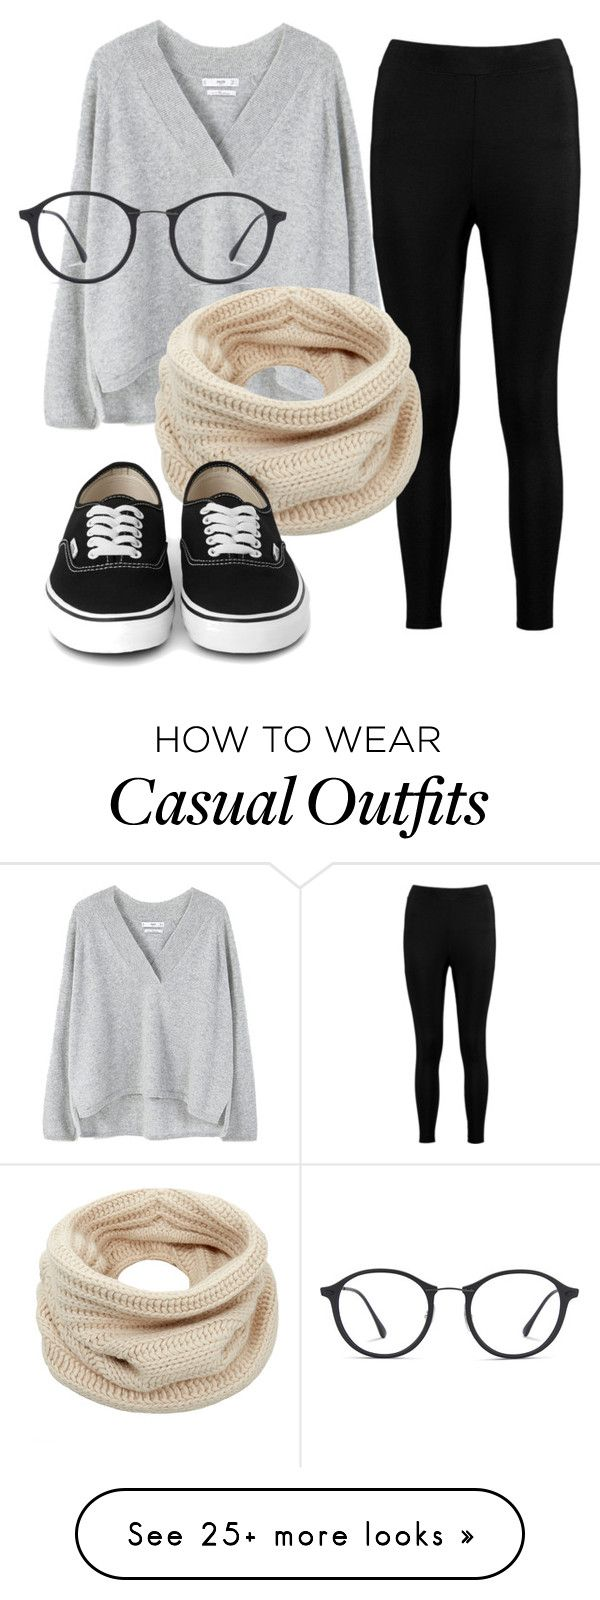 """""""Casual 52"""" by charlotteflowerlover on Polyvore featuring Boohoo, MANGO, Helmut Lang, Ray-Ban, casual and Nerdy"""